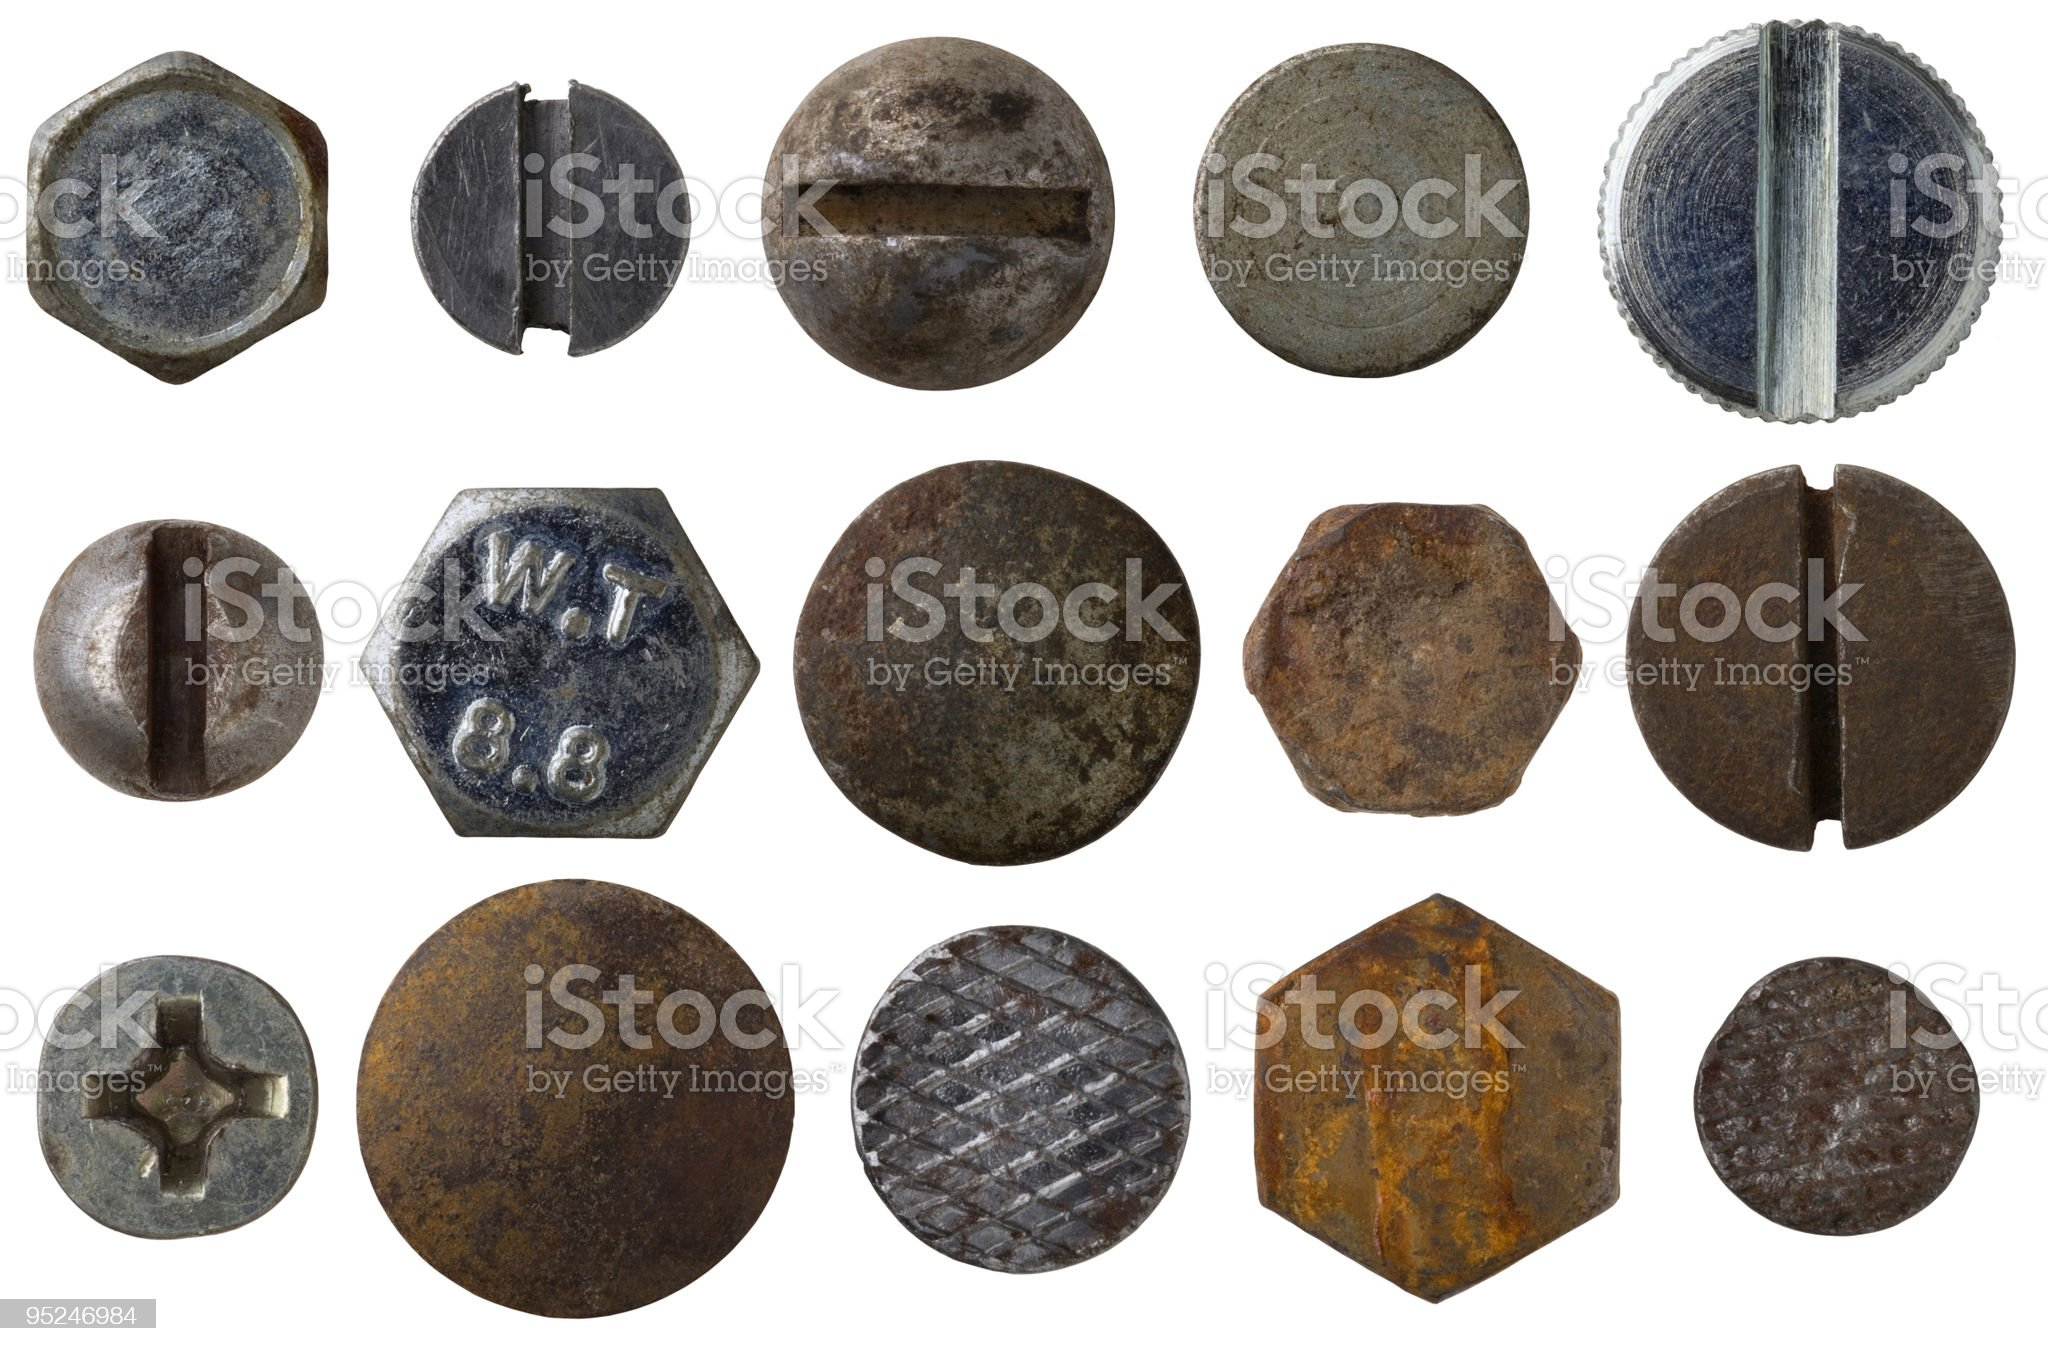 Set of 15 screw and bolt heads on white background royalty-free stock photo